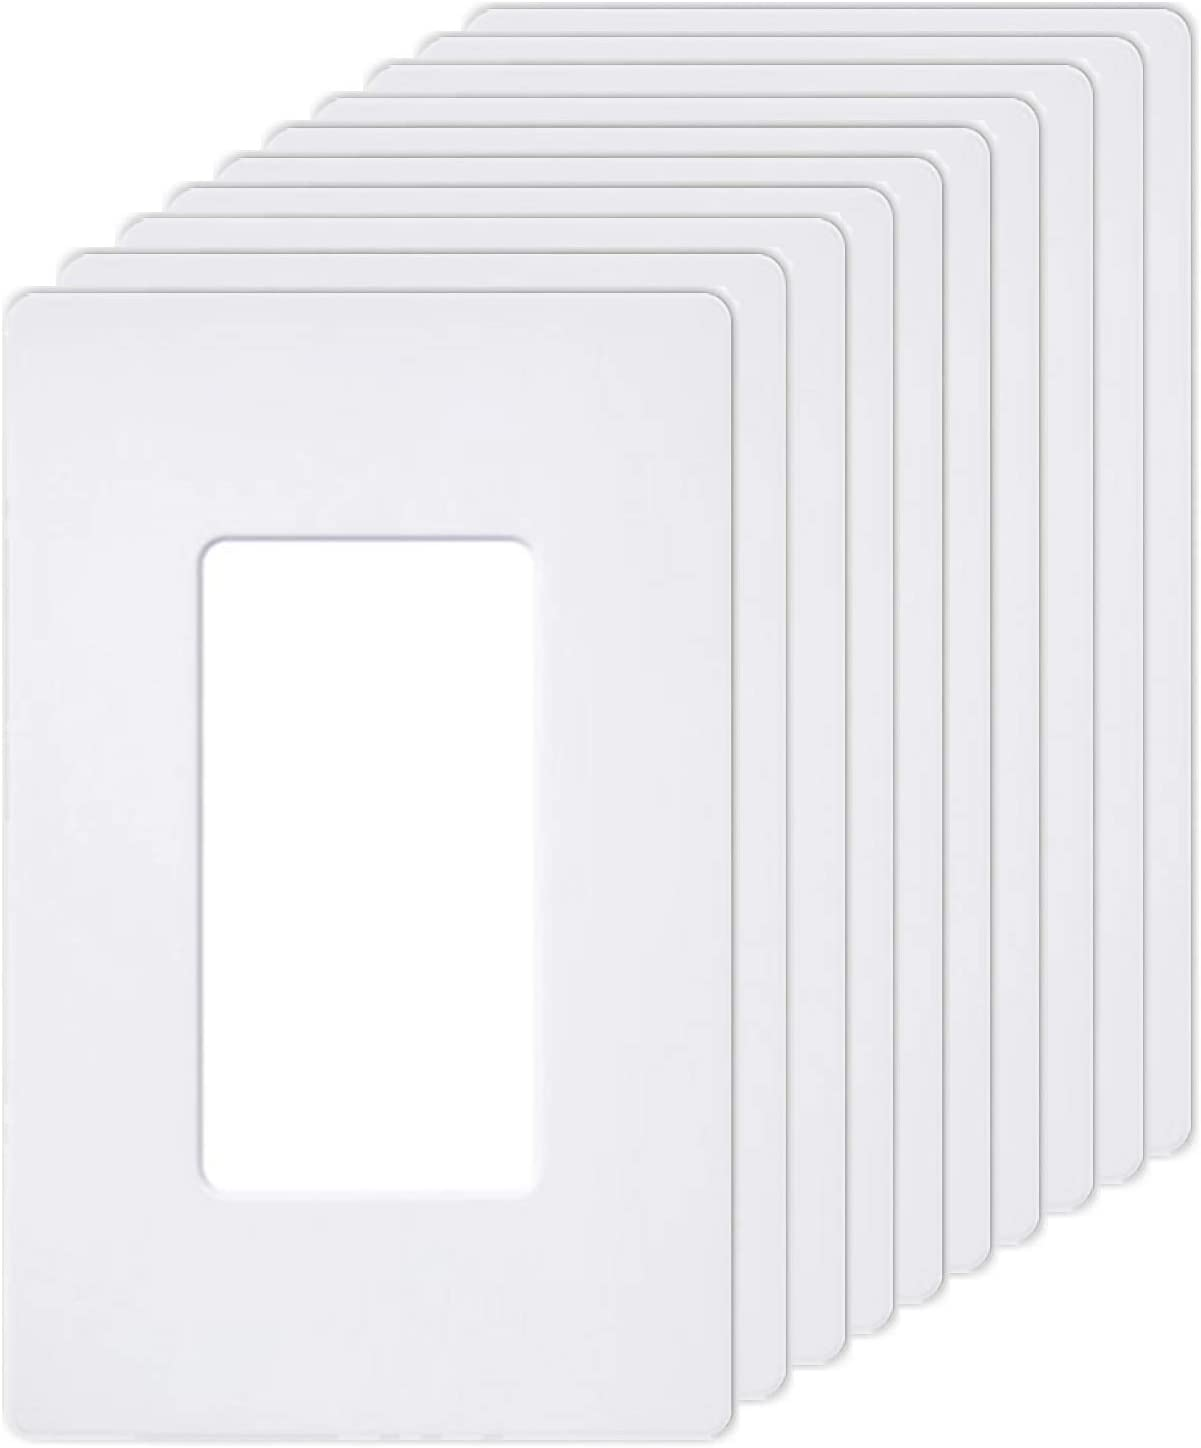 """[10 Pack] BESTTEN 1-Gang Screwless Wall Plate, USWP6 Snow White Series, Decorator Outlet Cover, 4.69"""" H x 2.91"""" L, for Decor Switch, Dimmer, GFCI, USB Receptacle, UL Listed"""